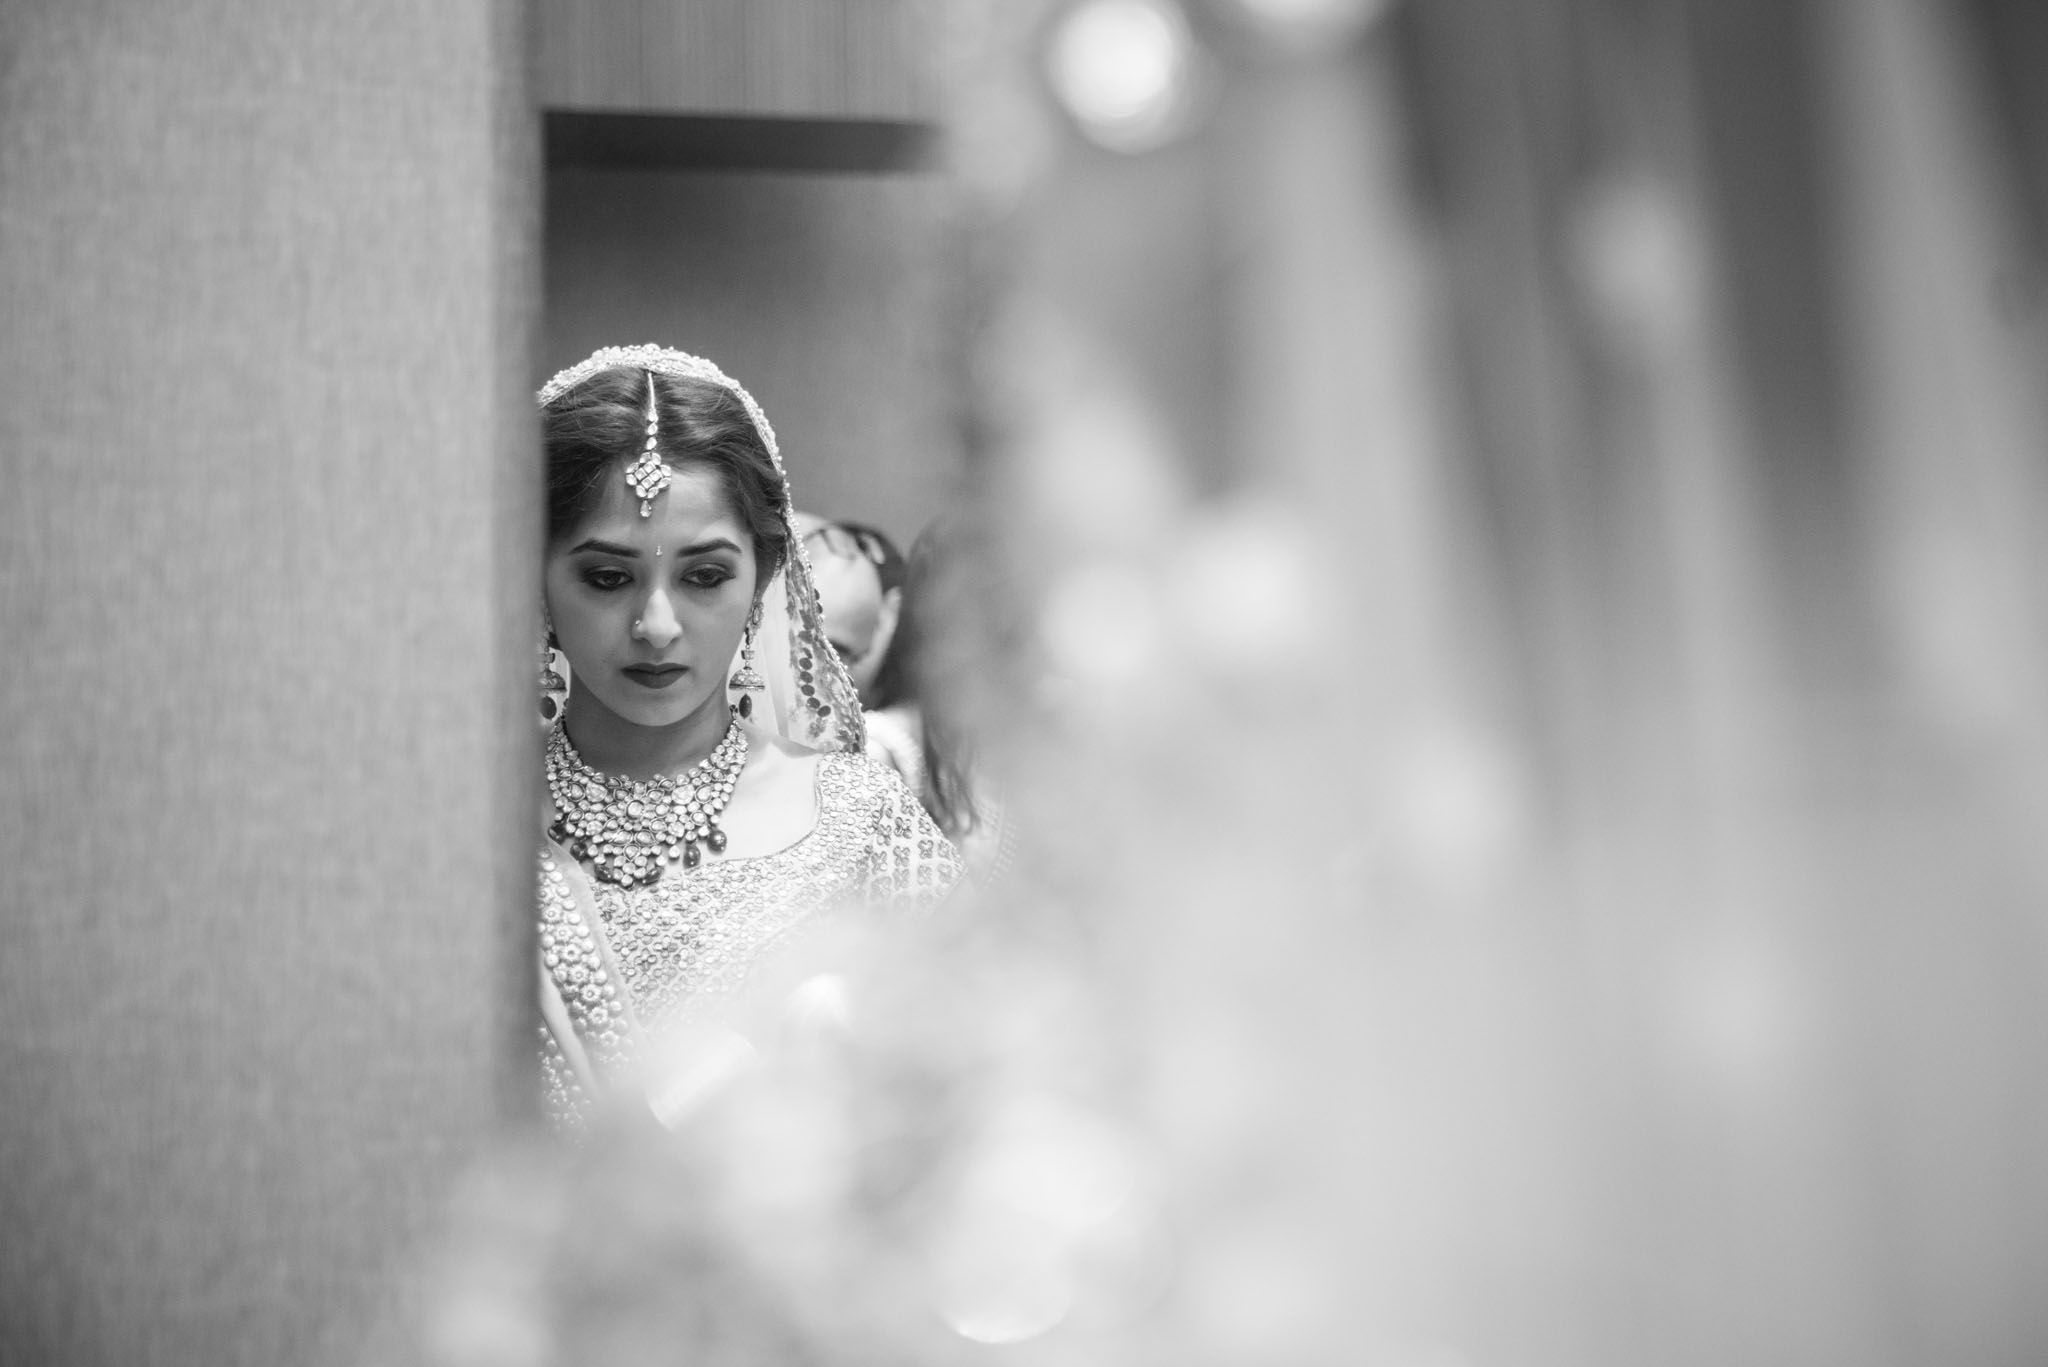 StRegis-Palladium-Mumbai-Candid-Wedding-Photography-18